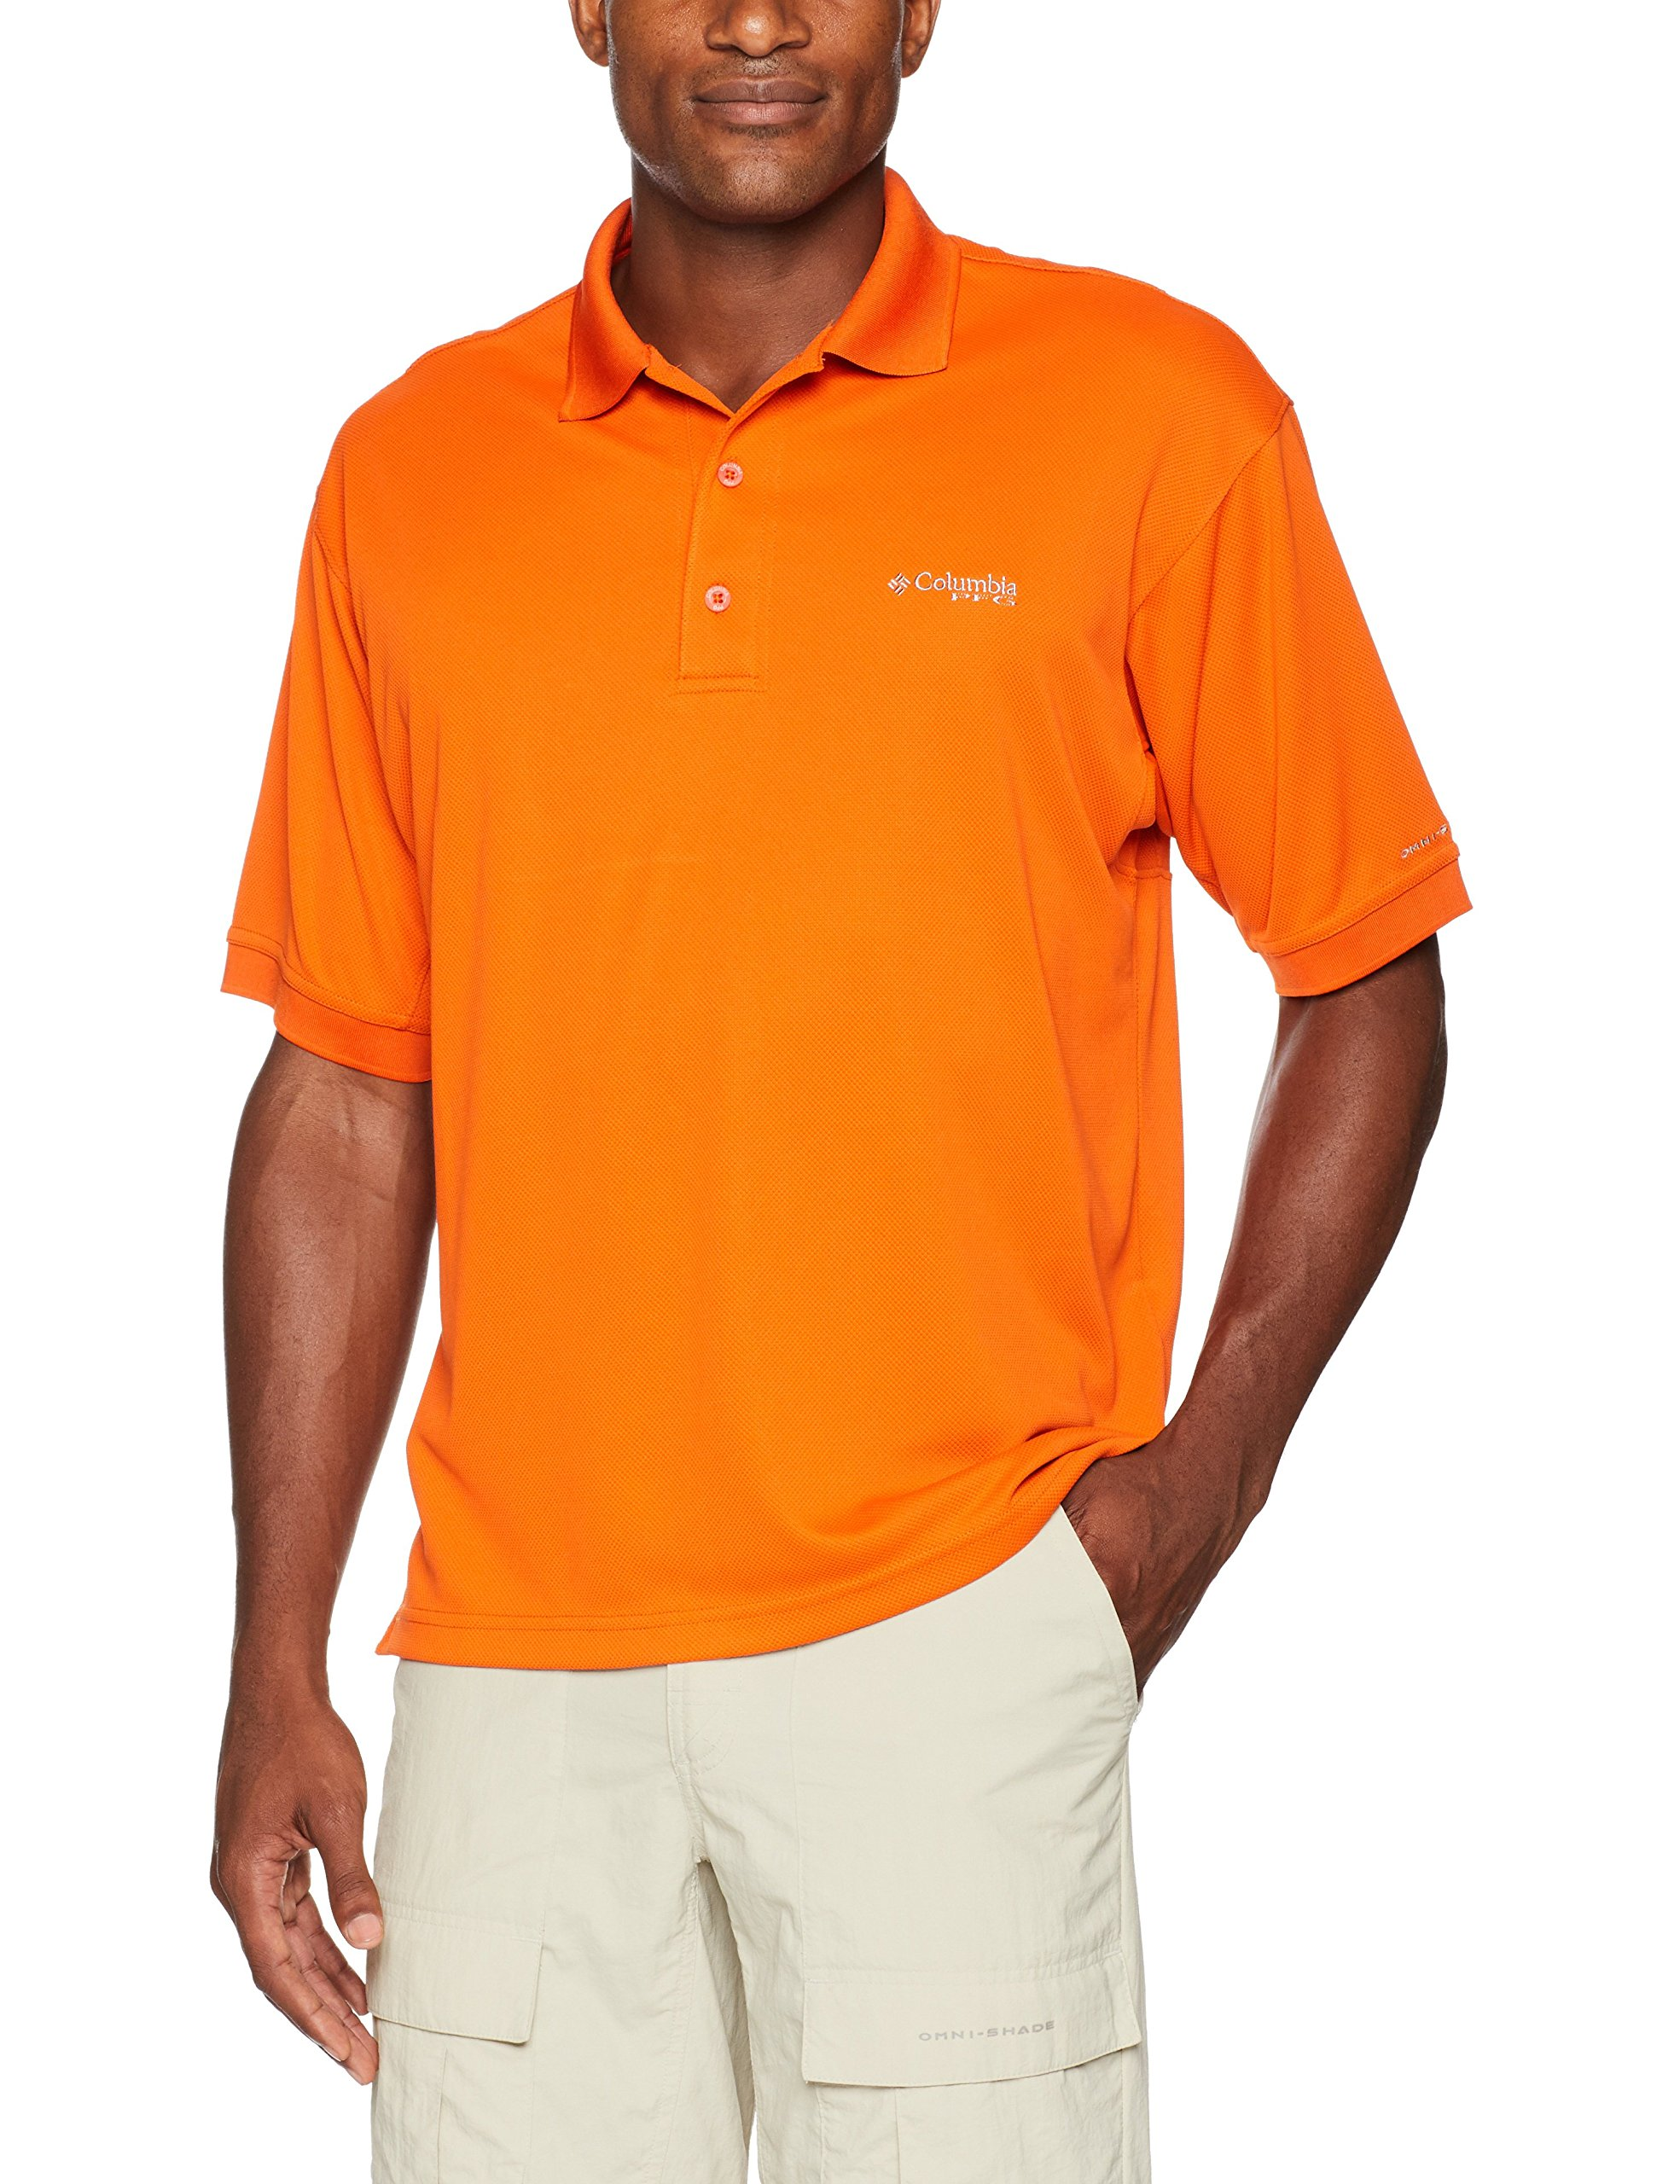 Columbia Men's Perfect Cast Polo Shirt, Backcountry Orange, Small